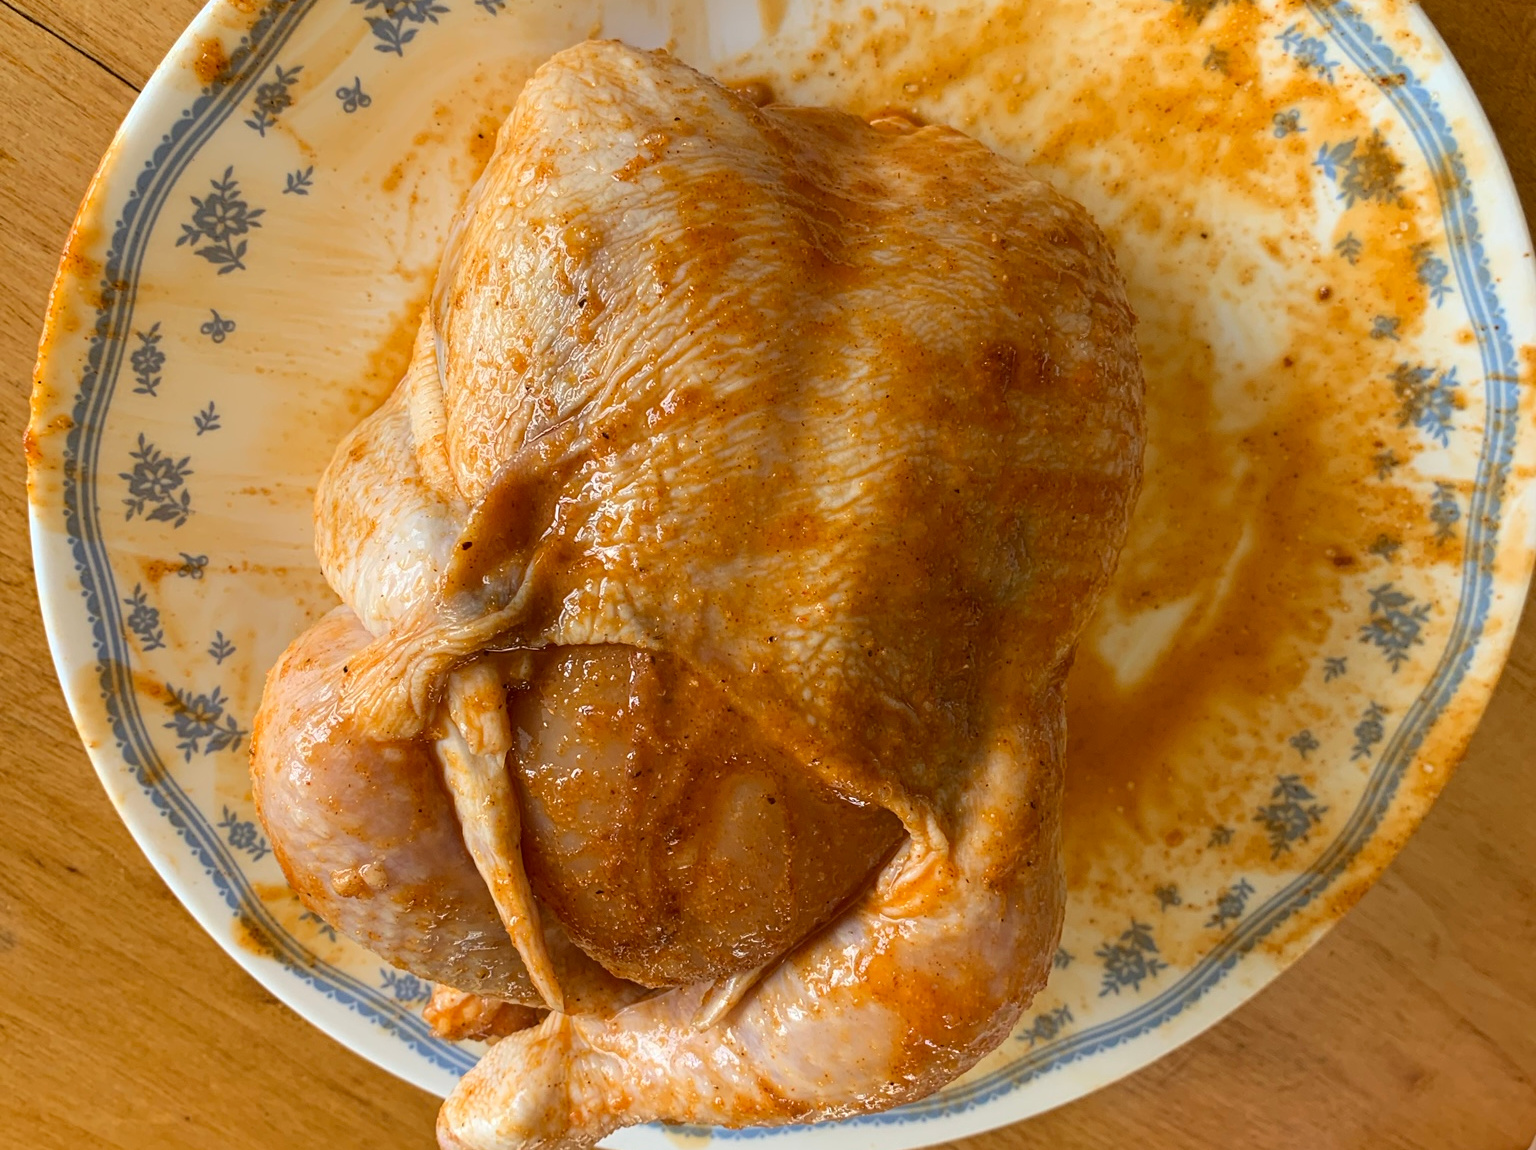 A chicken, rubbed with my homemade rub, ready for cooking.  It's quite yellow, probably from the paprika.